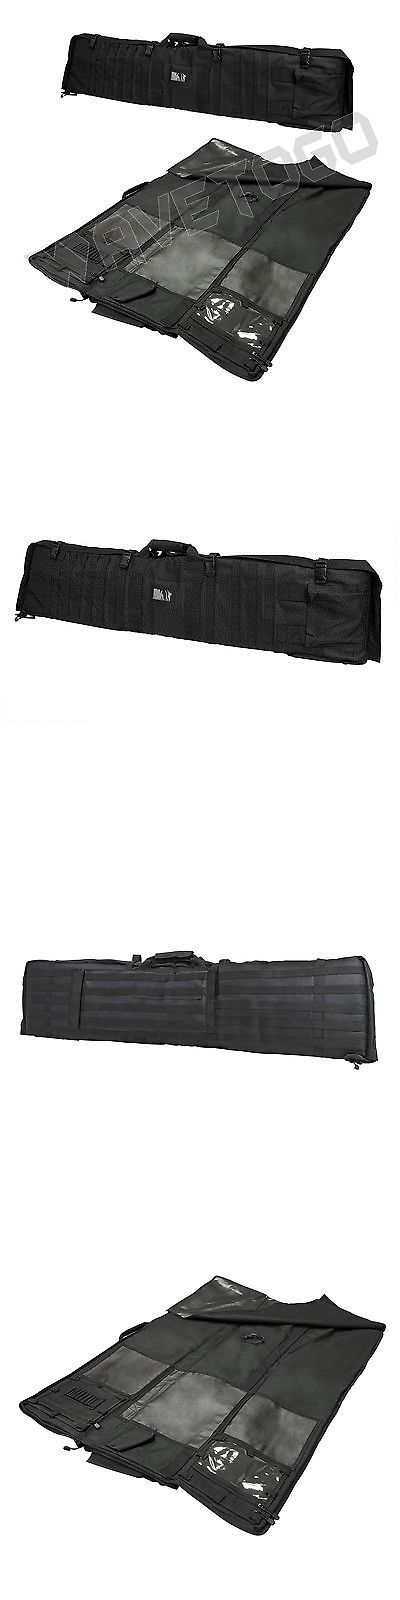 Range Gear 177905: Vism Ncstar Tactical Rifle Case Range Molle Pvc Hunting Shooting Mat Combo Black -> BUY IT NOW ONLY: $43.95 on eBay!